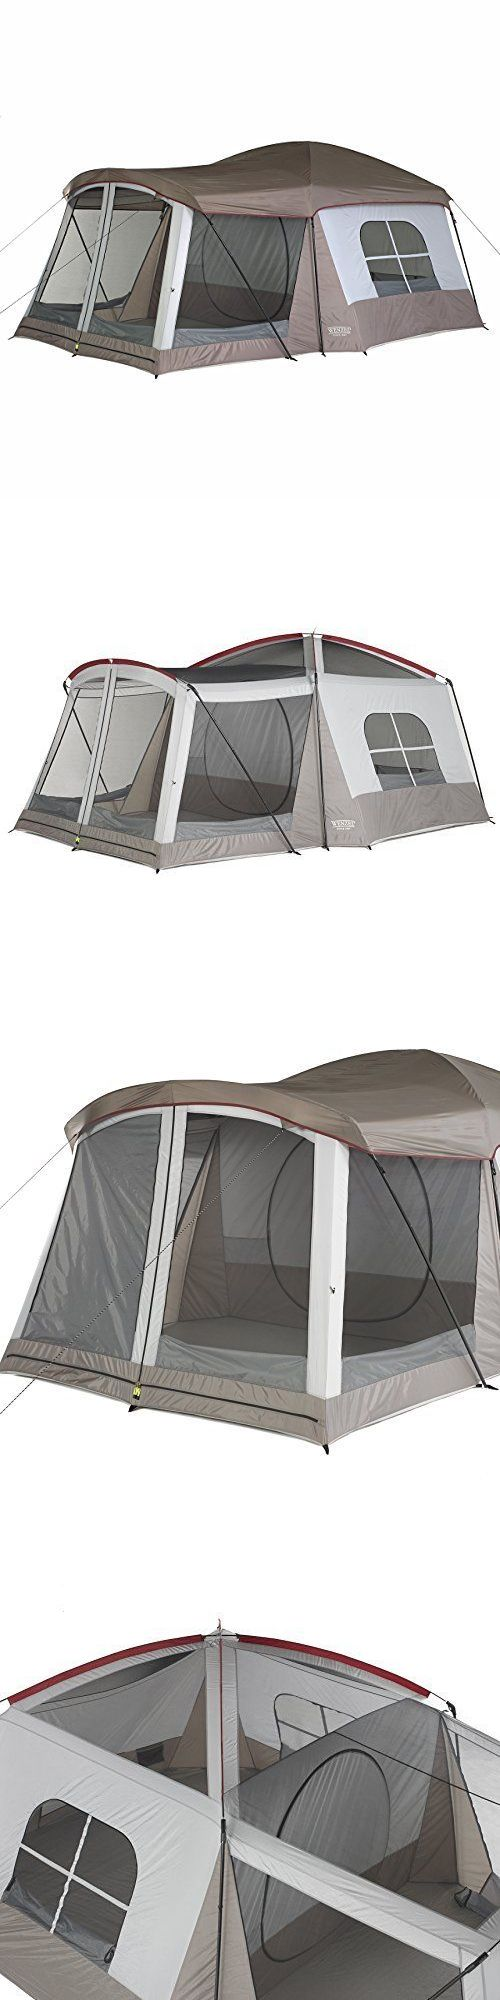 Tents 179010 Wenzel Klondike Cabin Tent 16 X 11 Feet 8 Person Family Dome  sc 1 st  Pinterest & Tents 179010: Wenzel Klondike Cabin Tent 16 X 11 Feet 8 Person ...